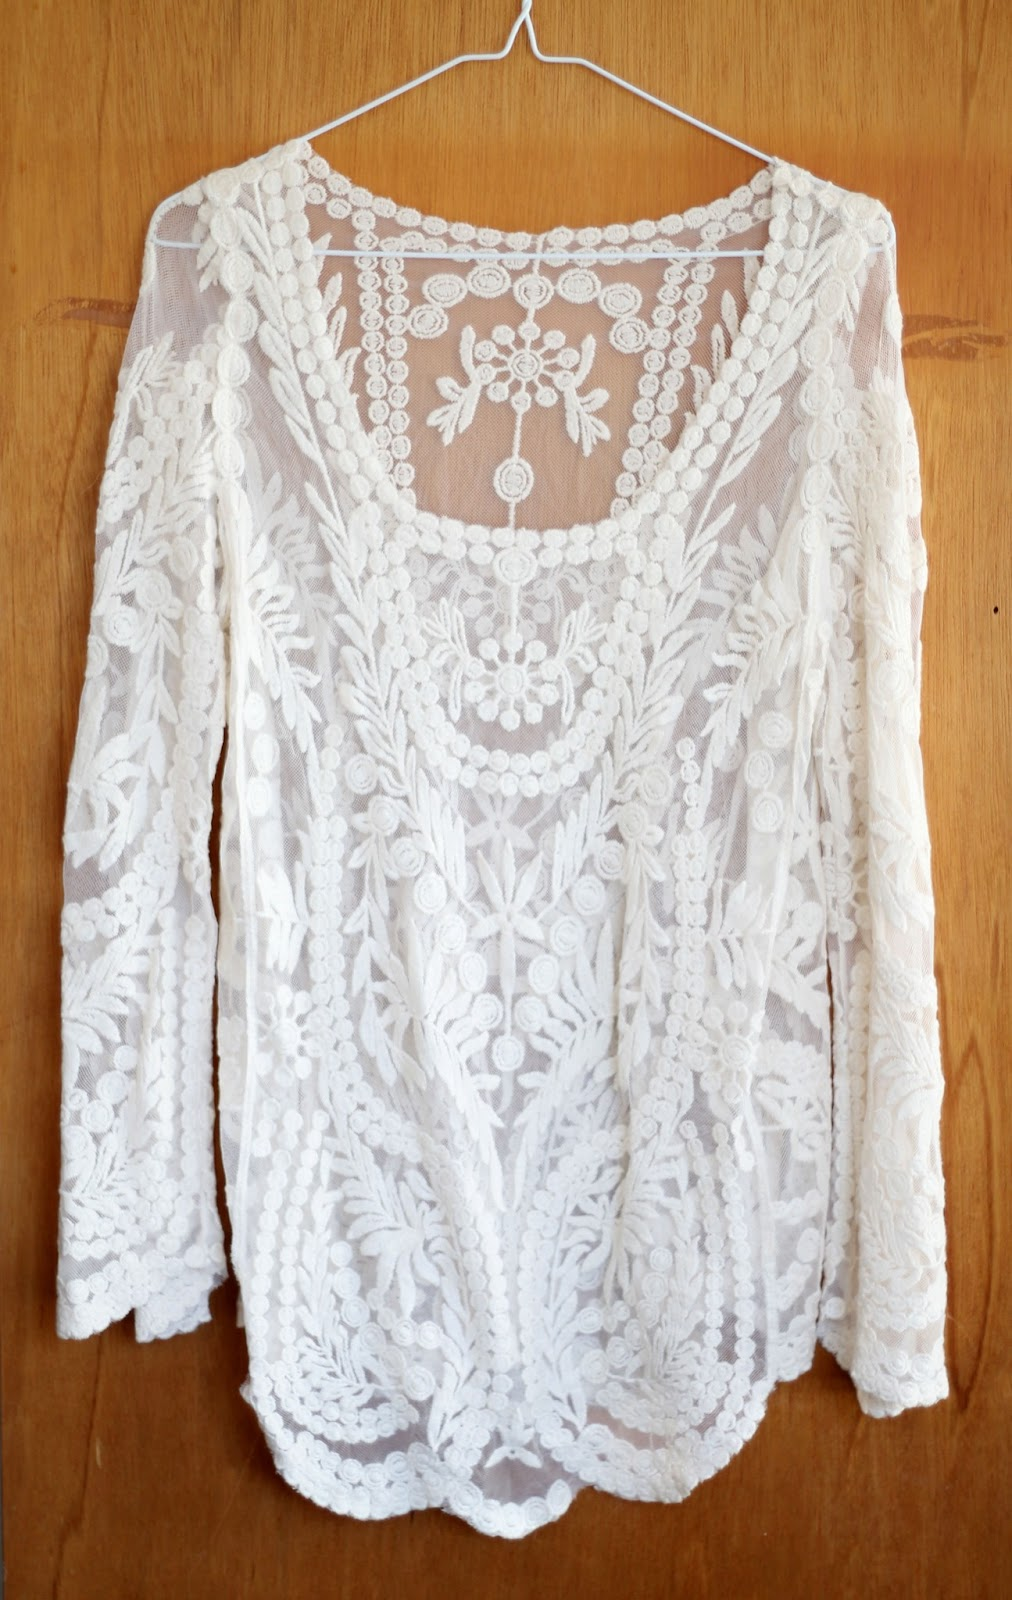 Rose Tinted Illustration: White Crochet Lace Top